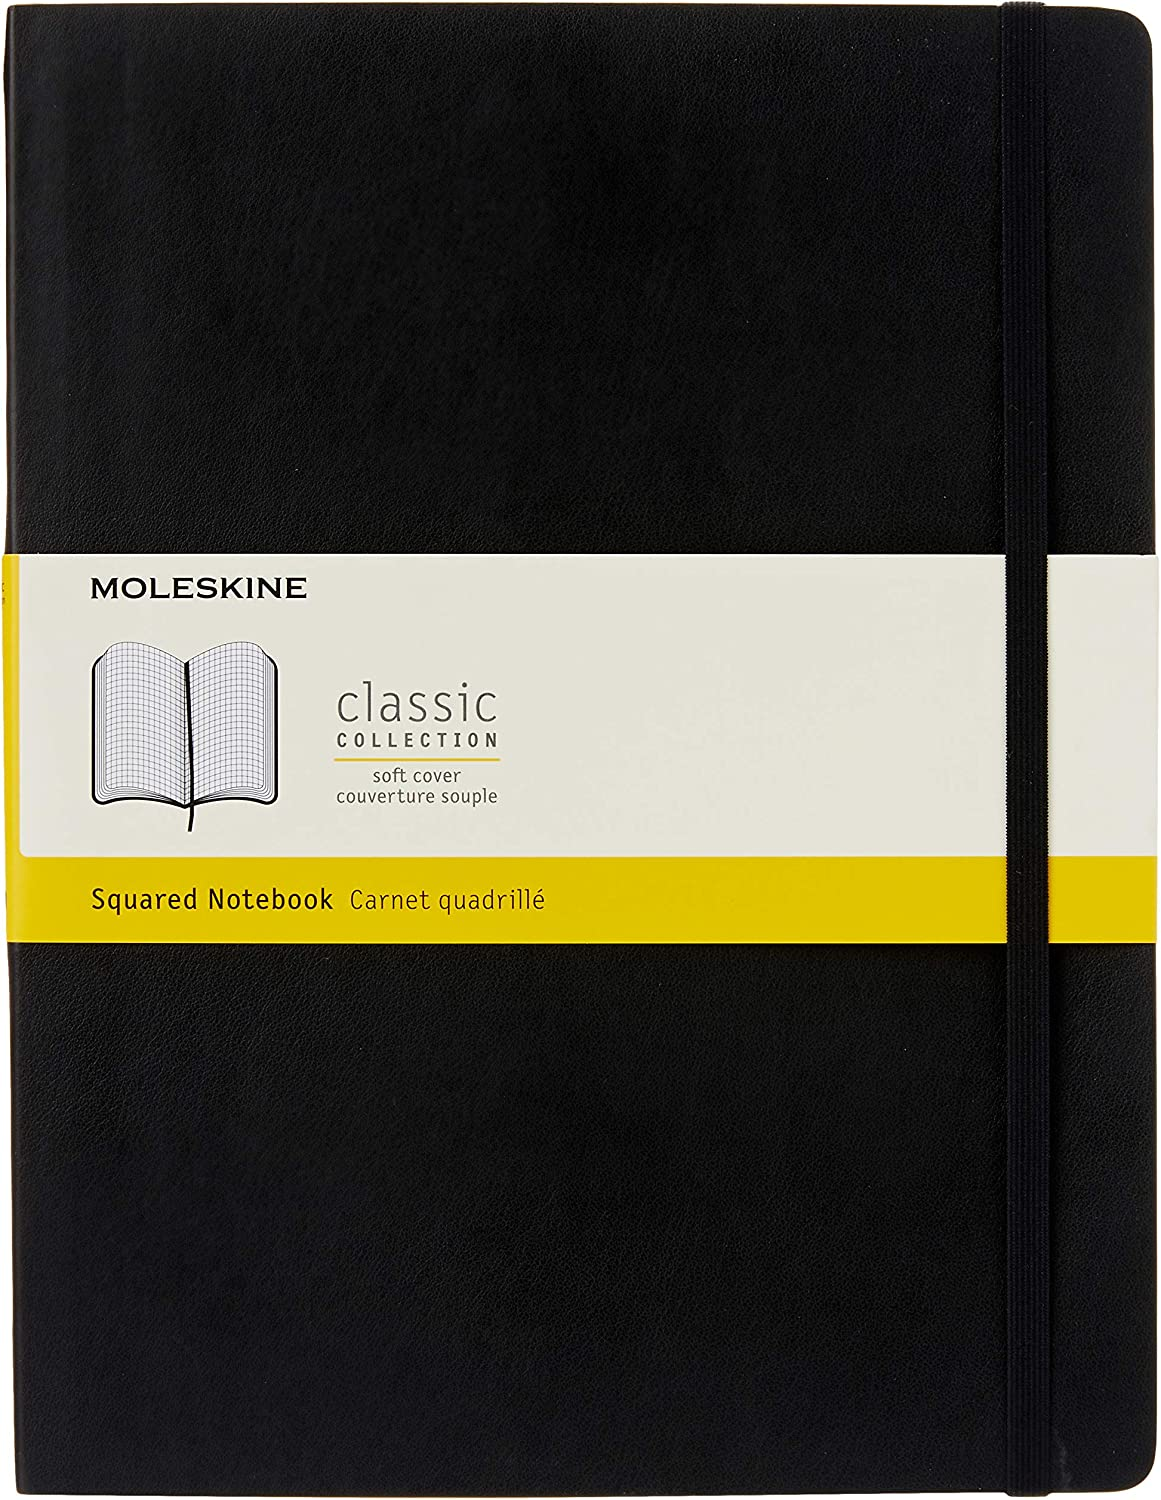 Soft Cover Notebook for Writing Journals Black XL 7.5 x 9.75 Dotted Sketching Moleskine Classic Soft Cover Notebook